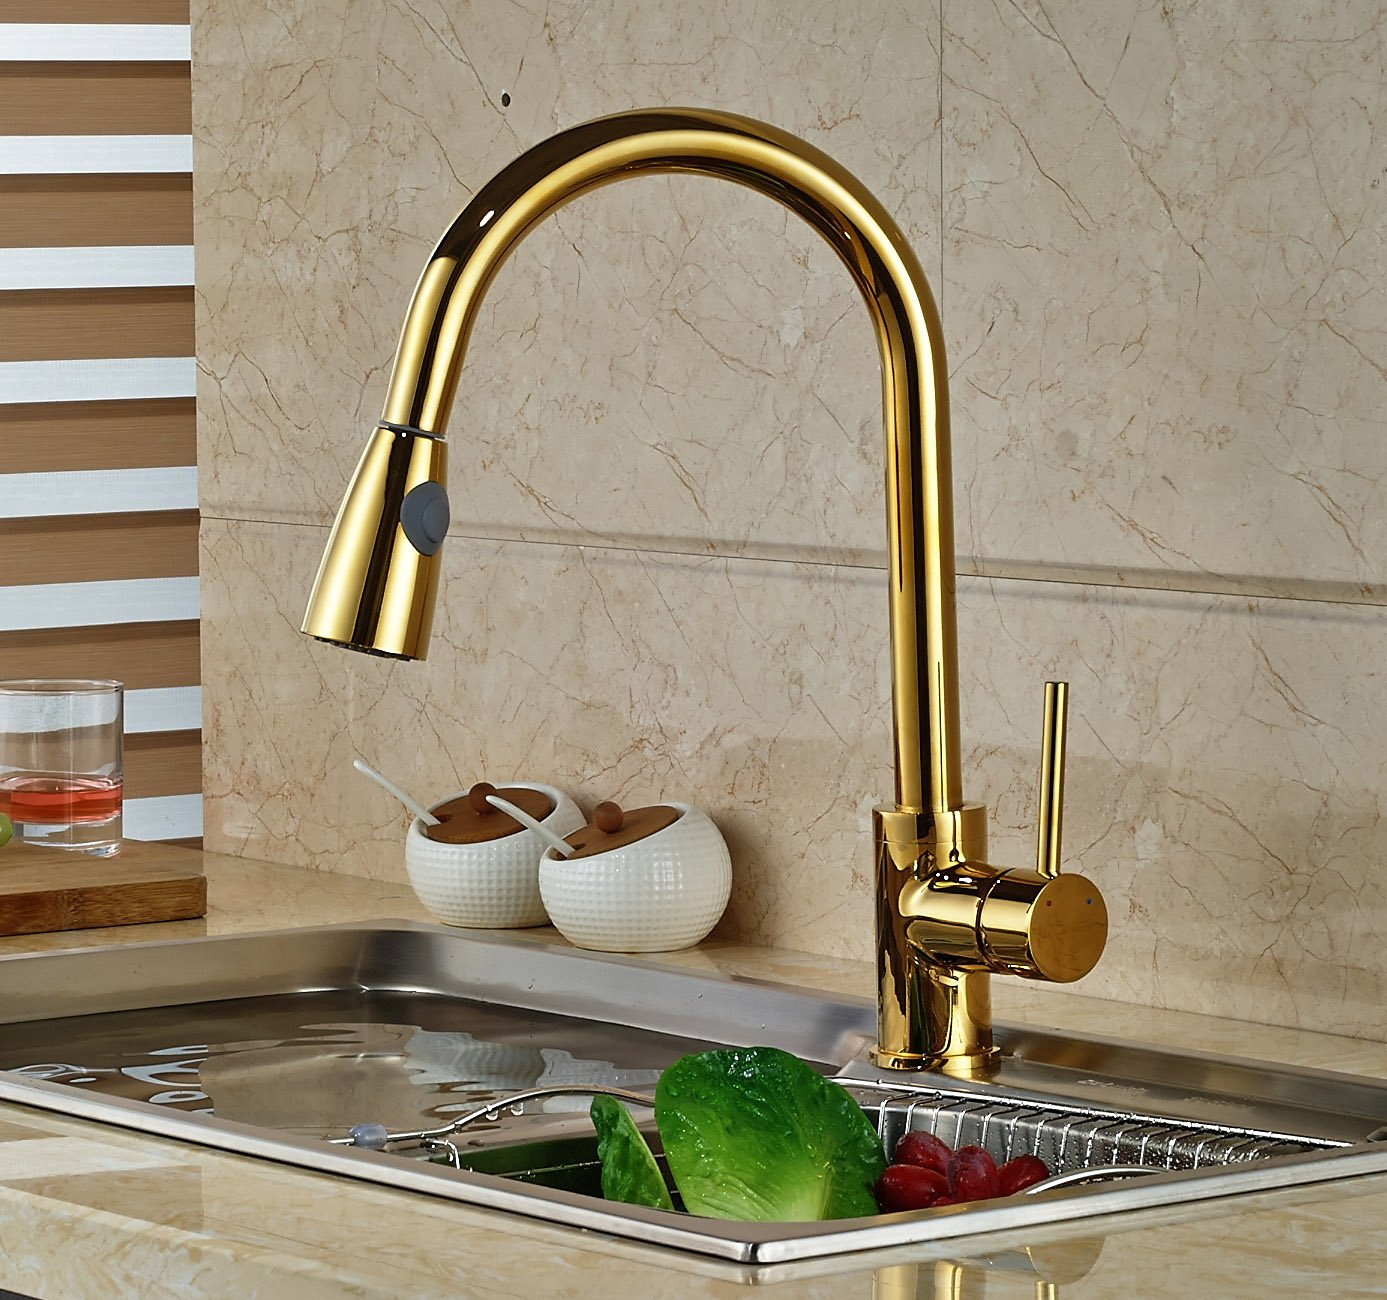 gold kitchen faucet pictures for wall broward mounted manaus deck finish sink